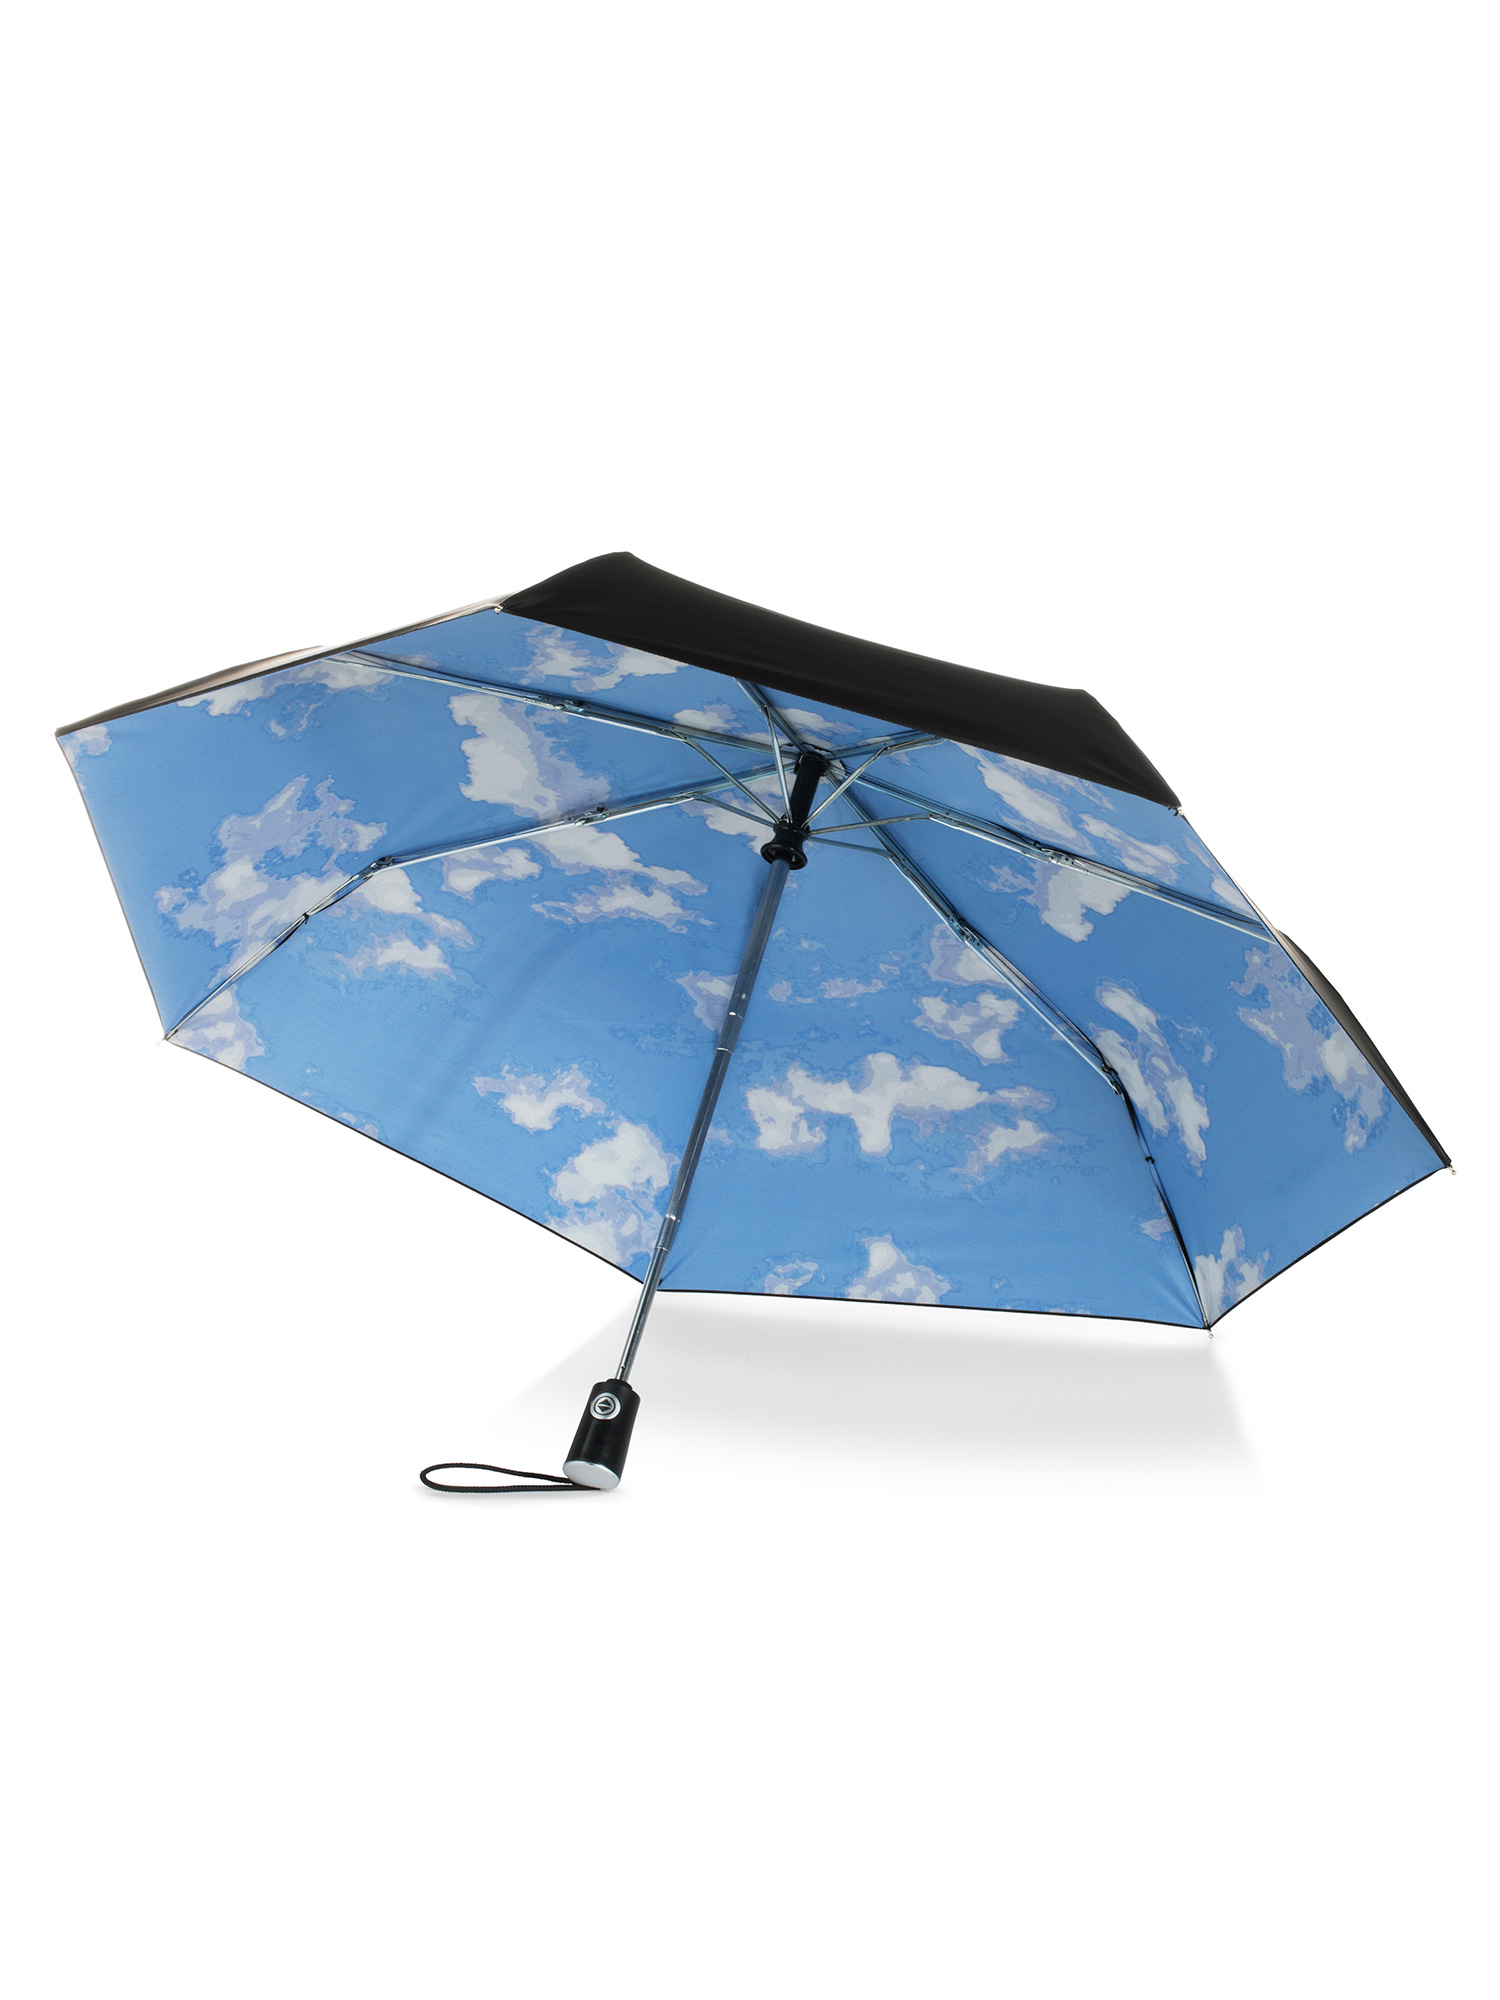 DOENR Compact Travel Umbrella Dinosaur Skeleton Sun and Rain Auto Open Close Folding Umbrella